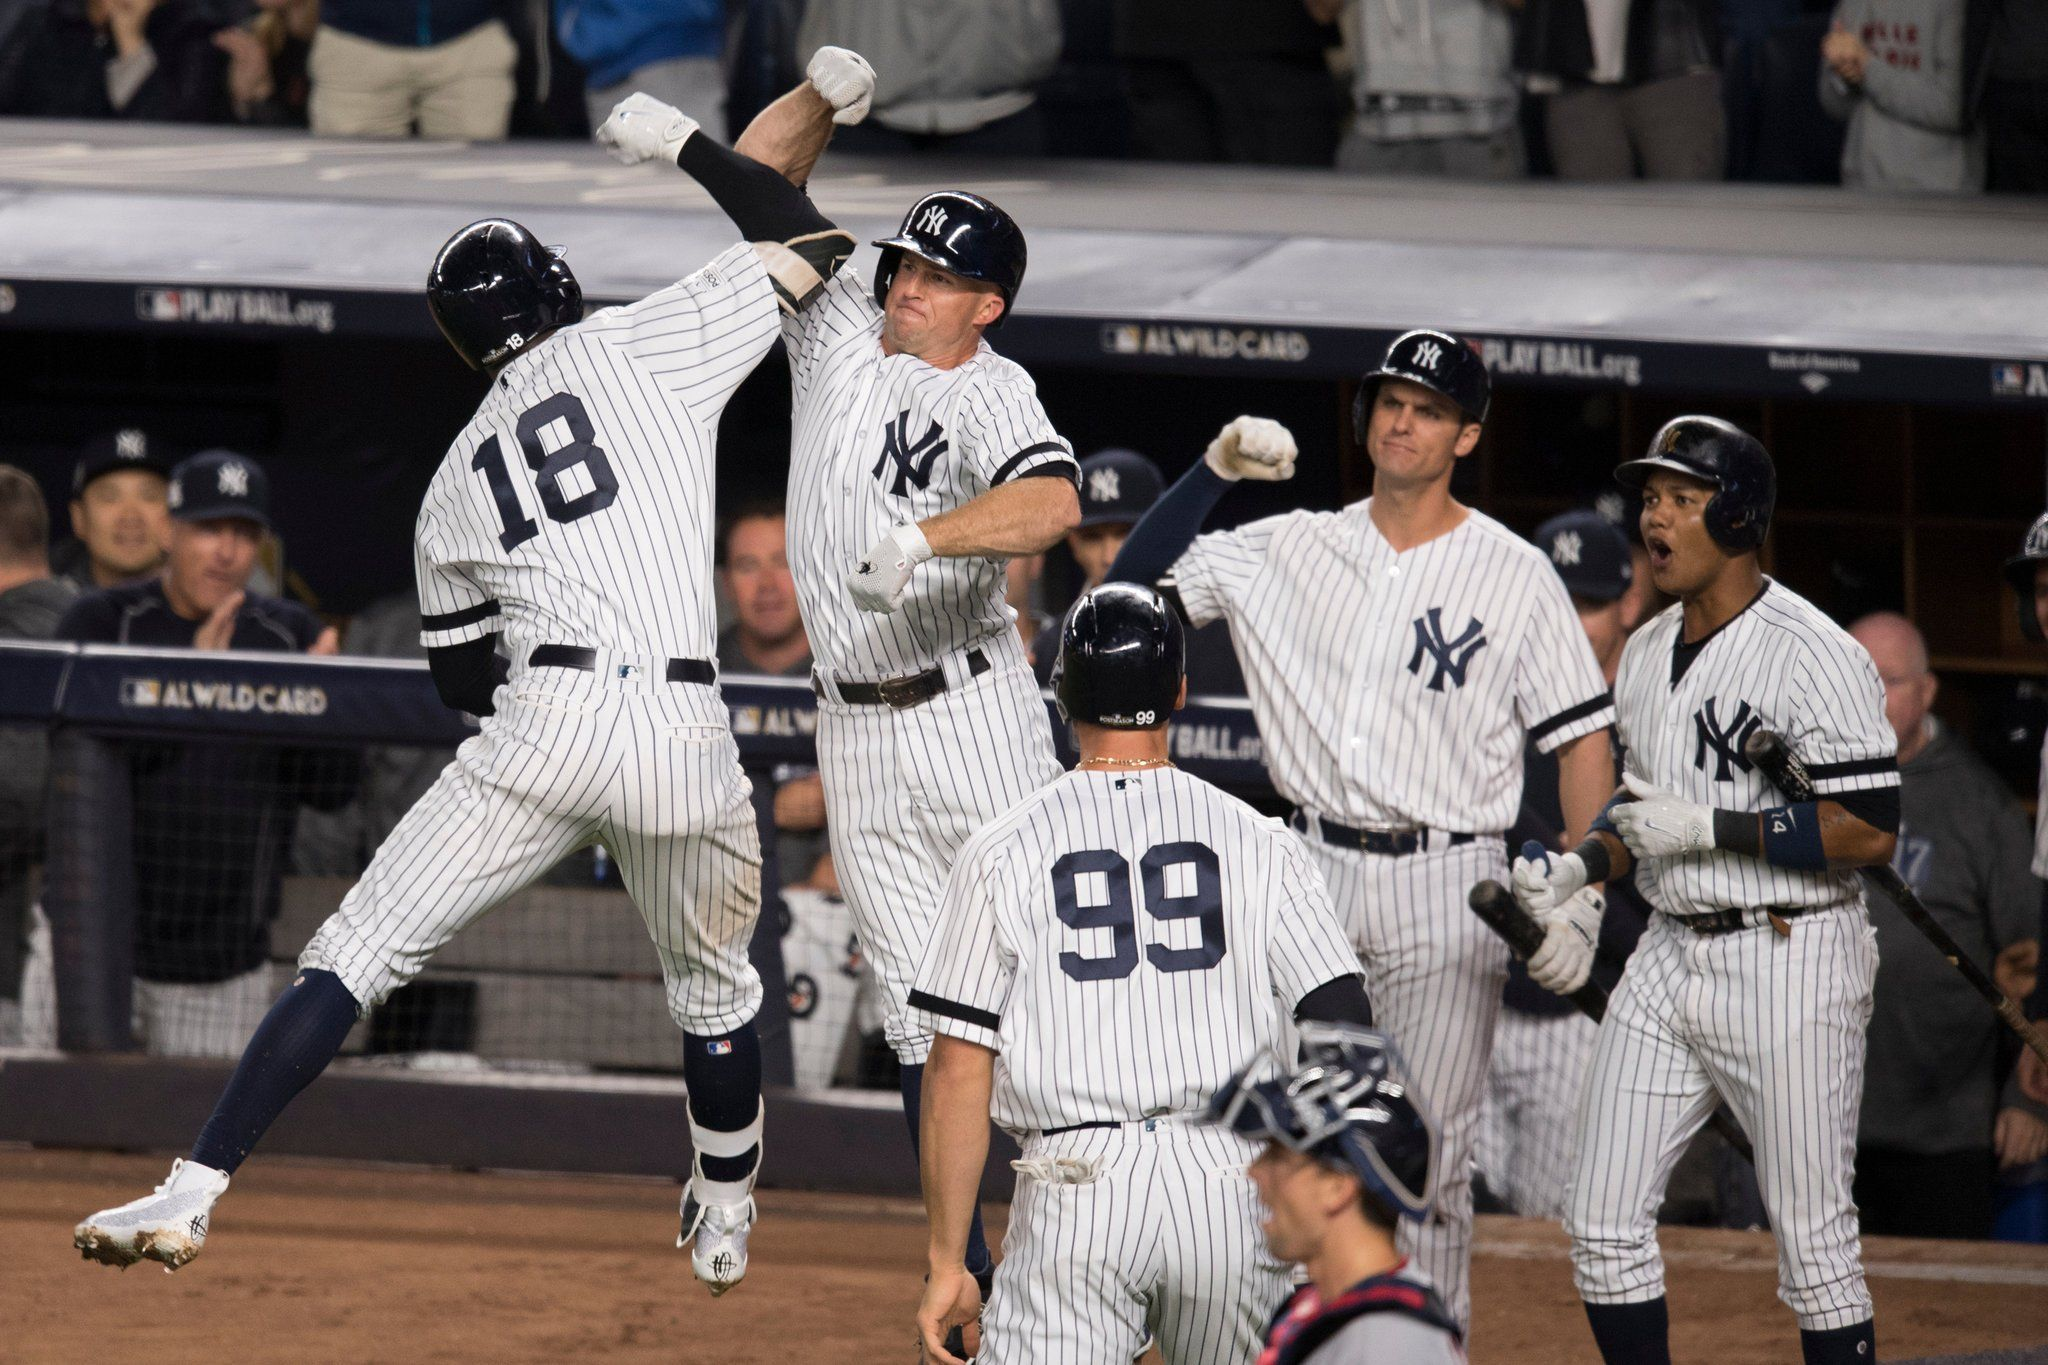 M L B Playoffs How The Yankees Beat The Twins In The Wild Card Game New York Yankees Baseball Baseball Playoffs Yankees Baseball